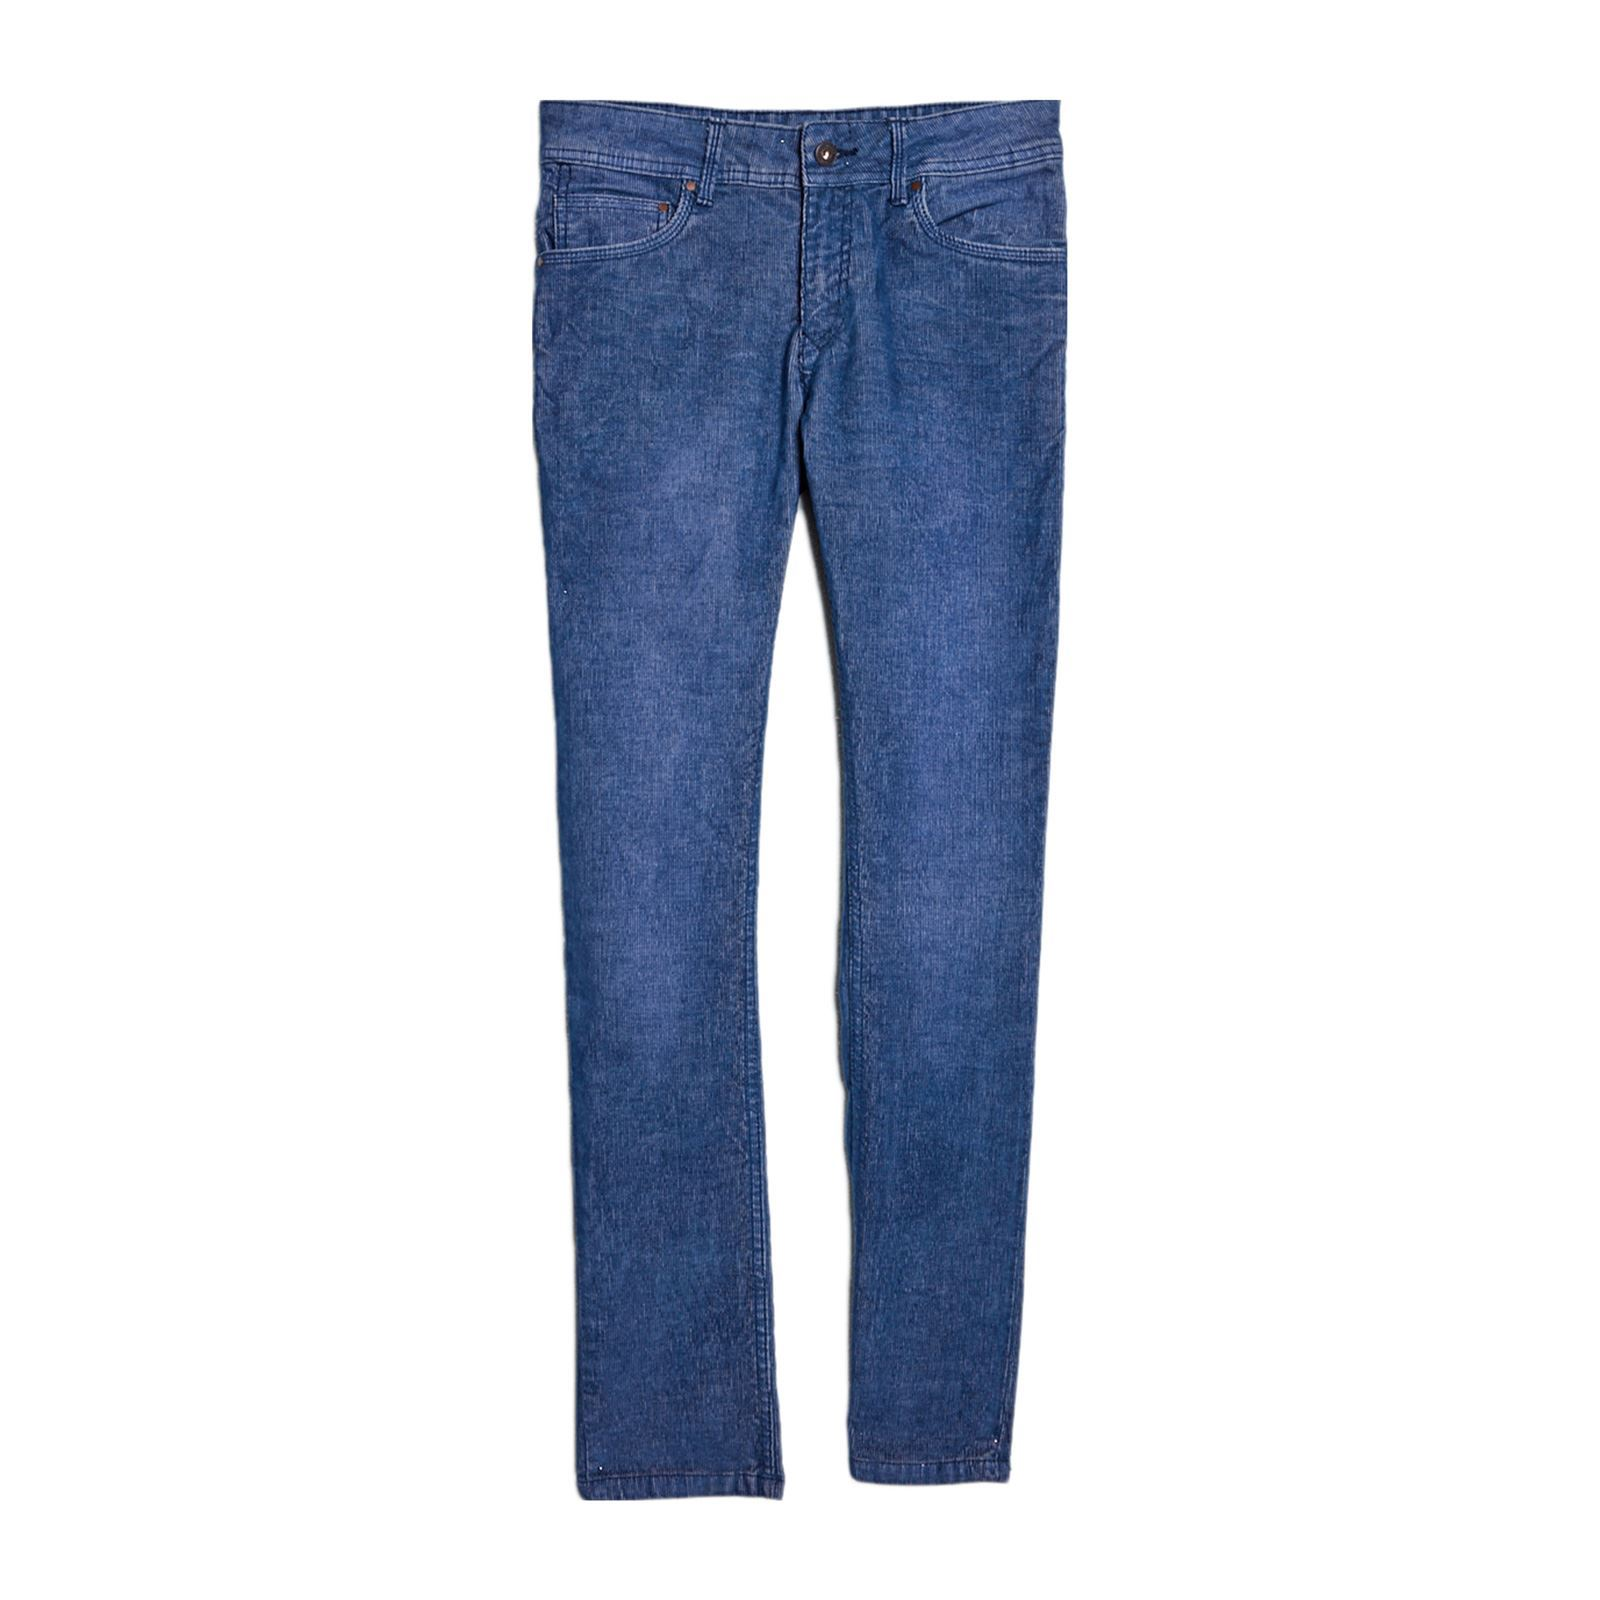 Azul London Ron Pepe Pantalón Brandalley Jeans IP4IxHqw